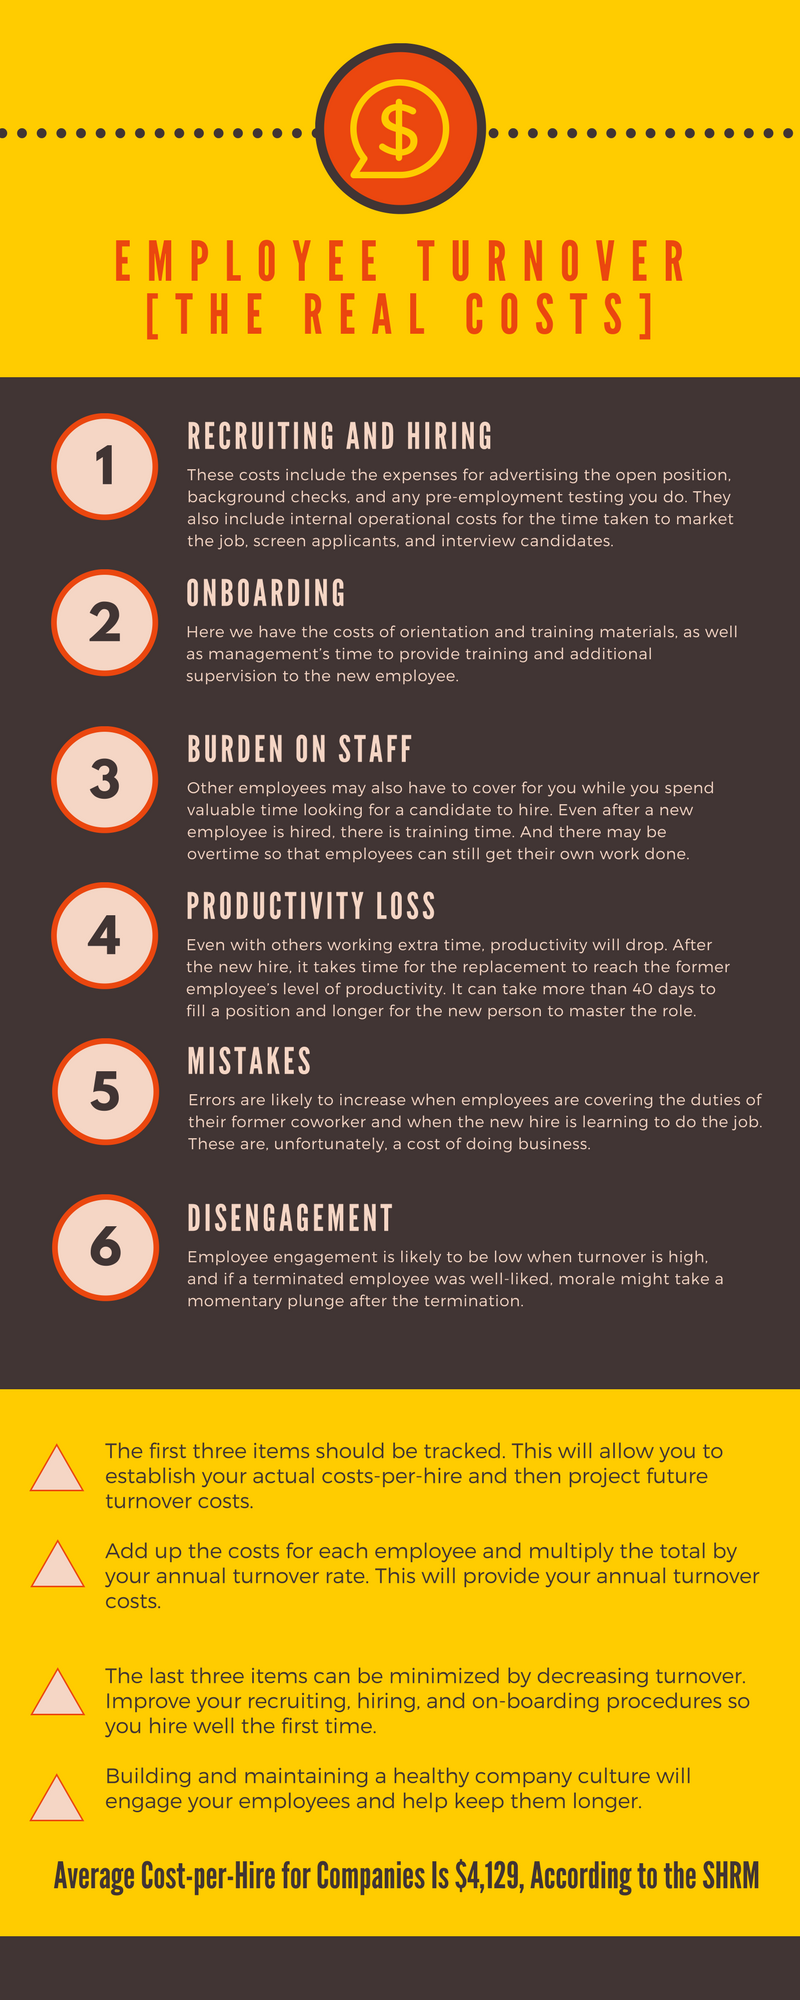 employee turnover - the real costs